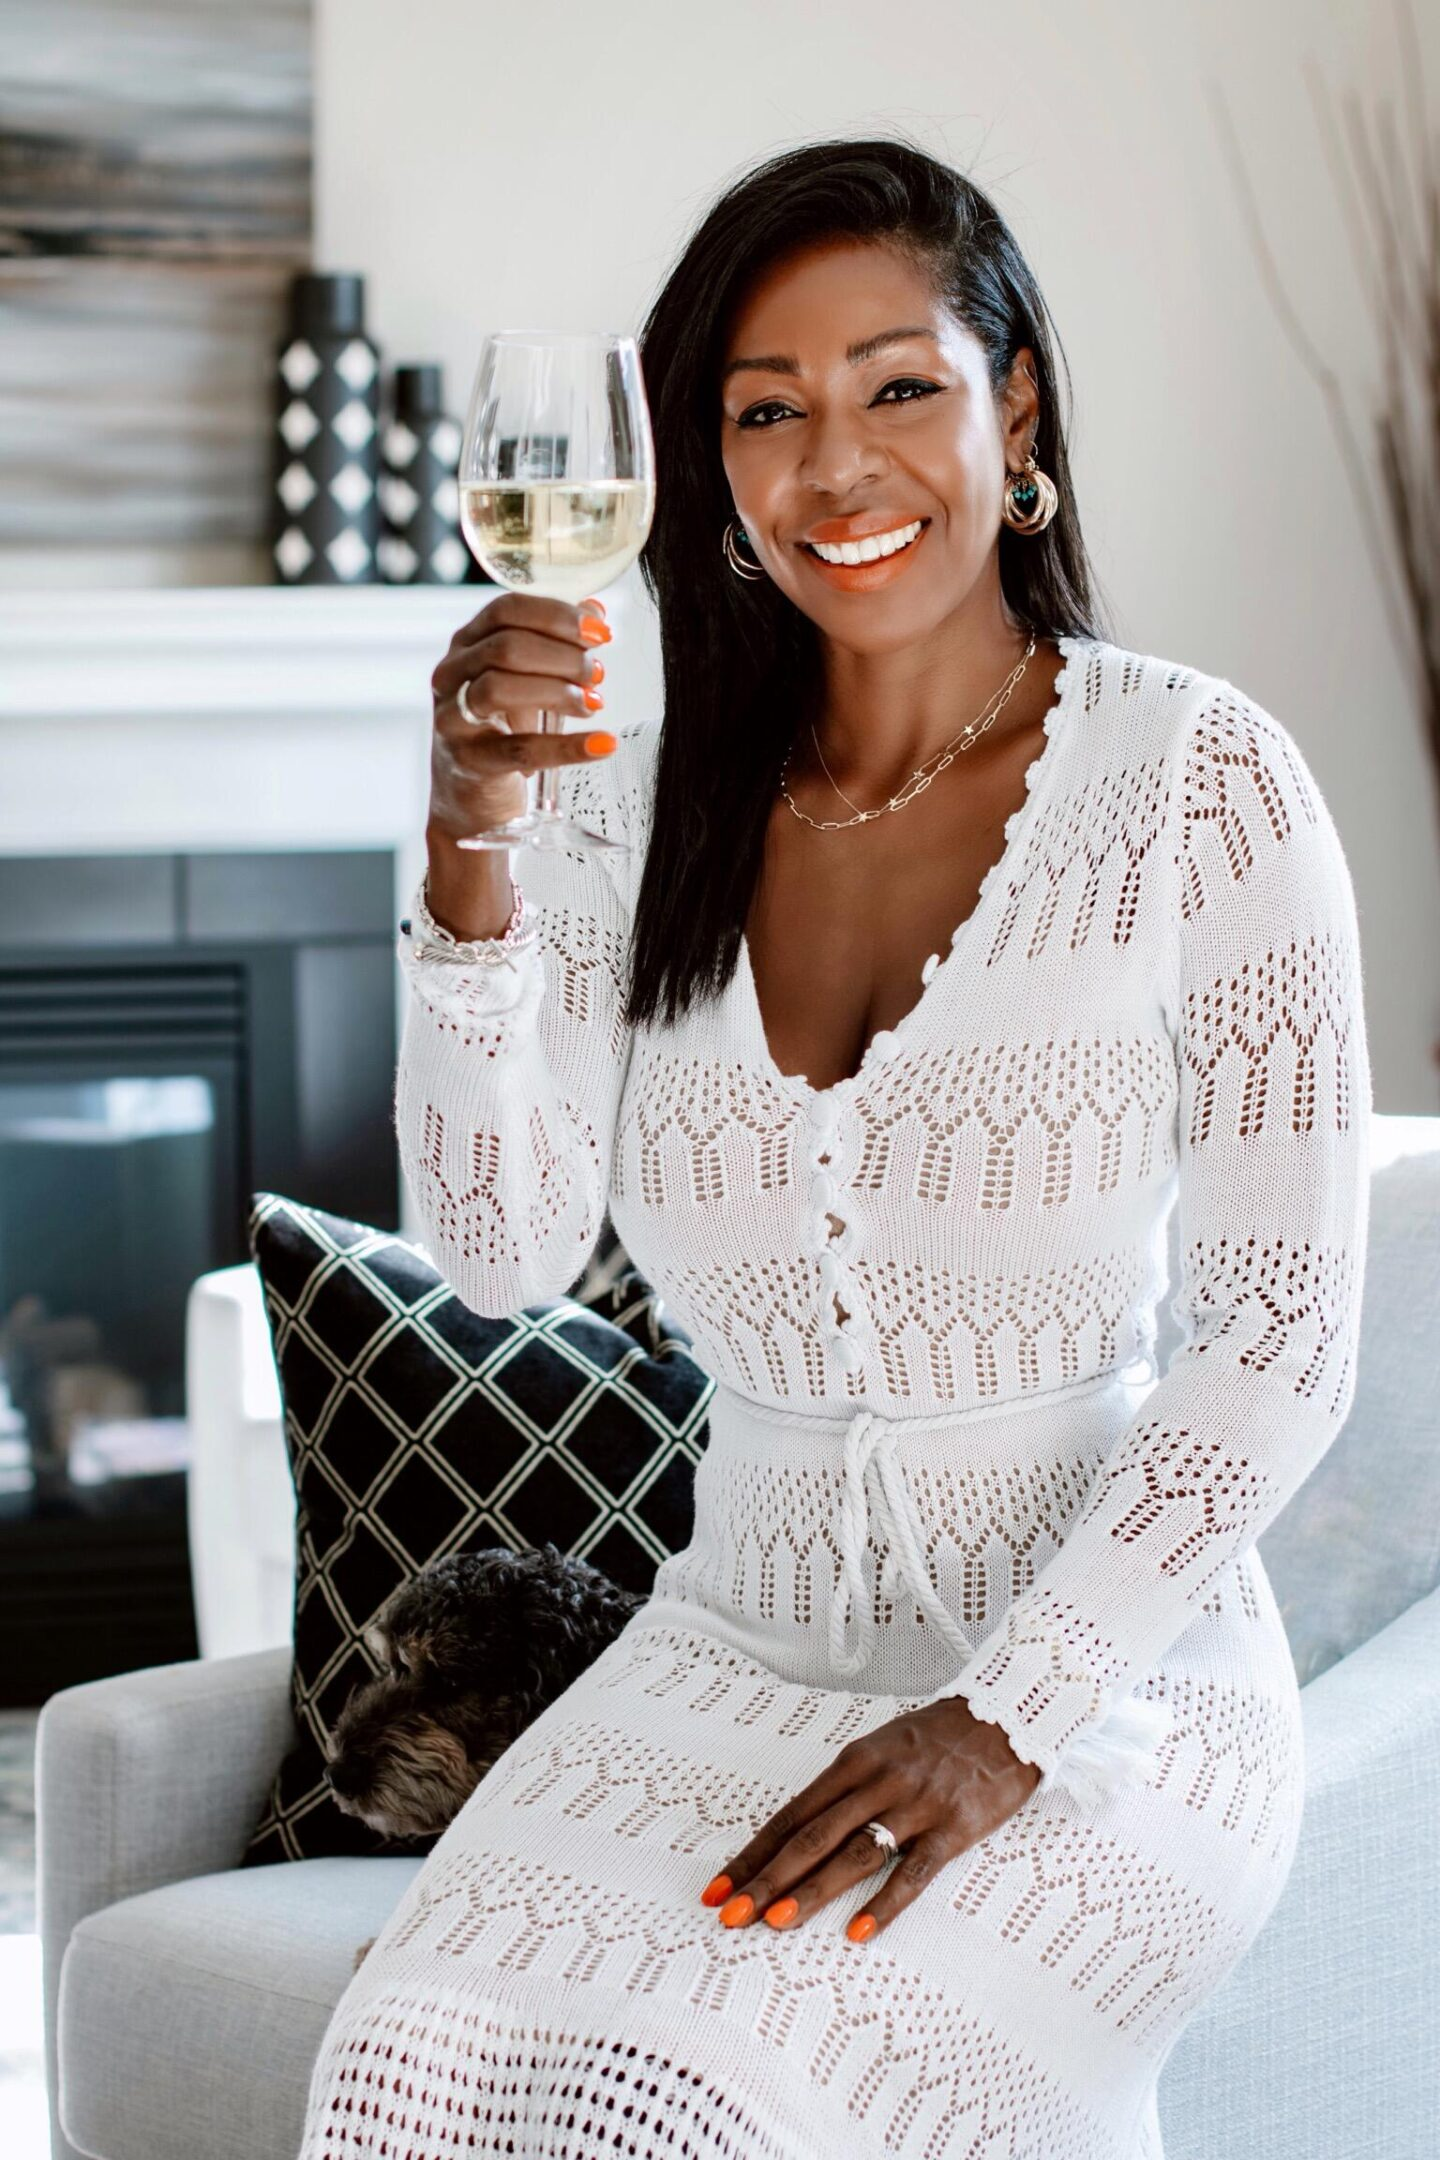 Dominique Baker holding a glass of wine